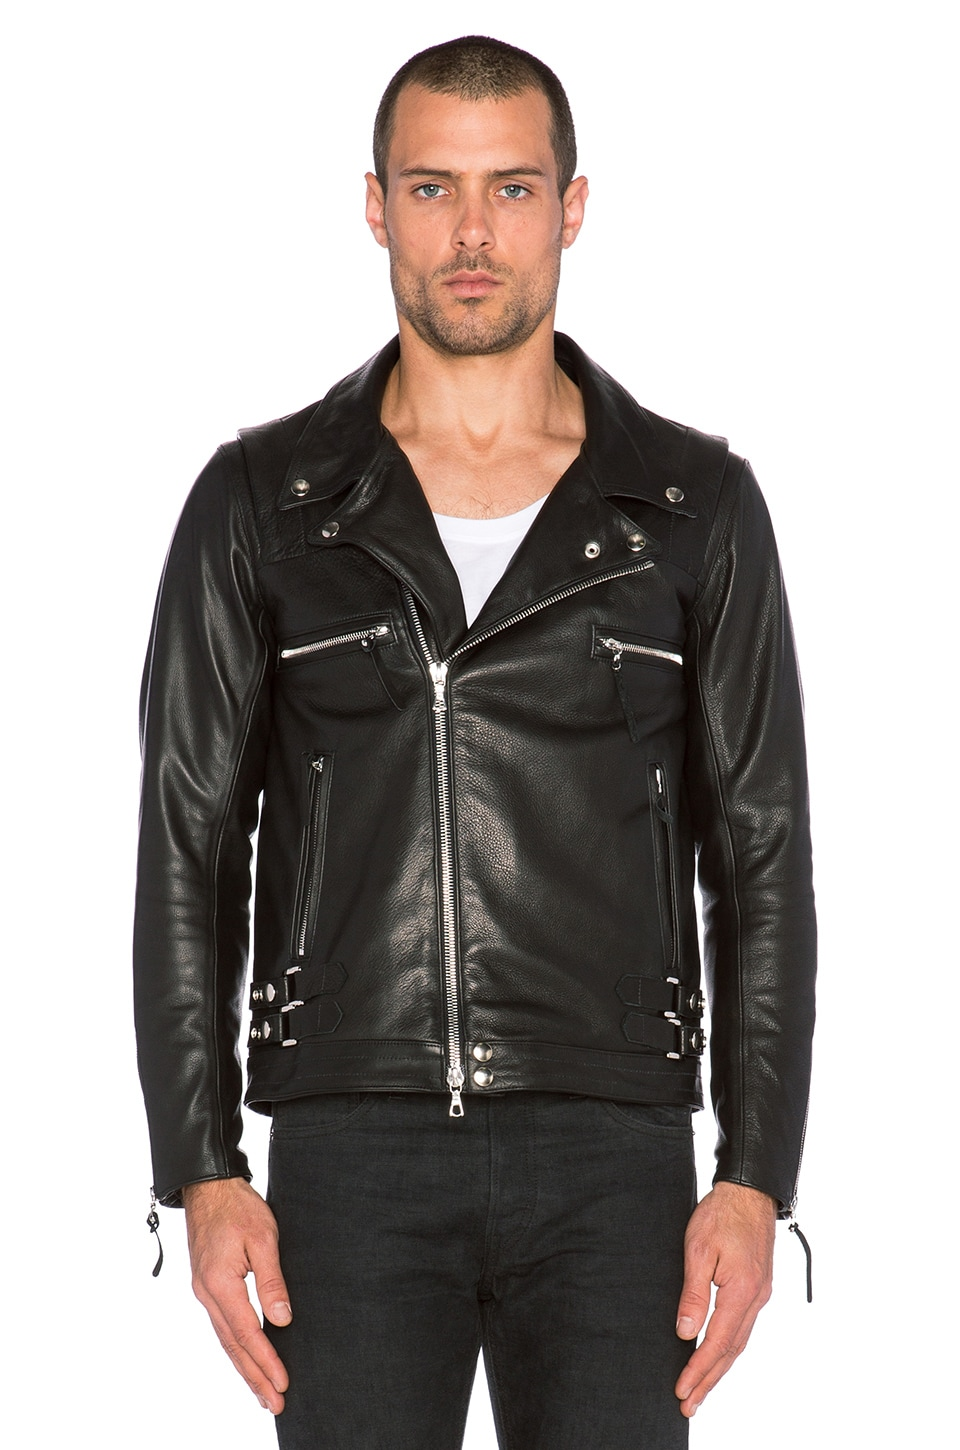 Riders Jacket India co Rider's Jacket in Black